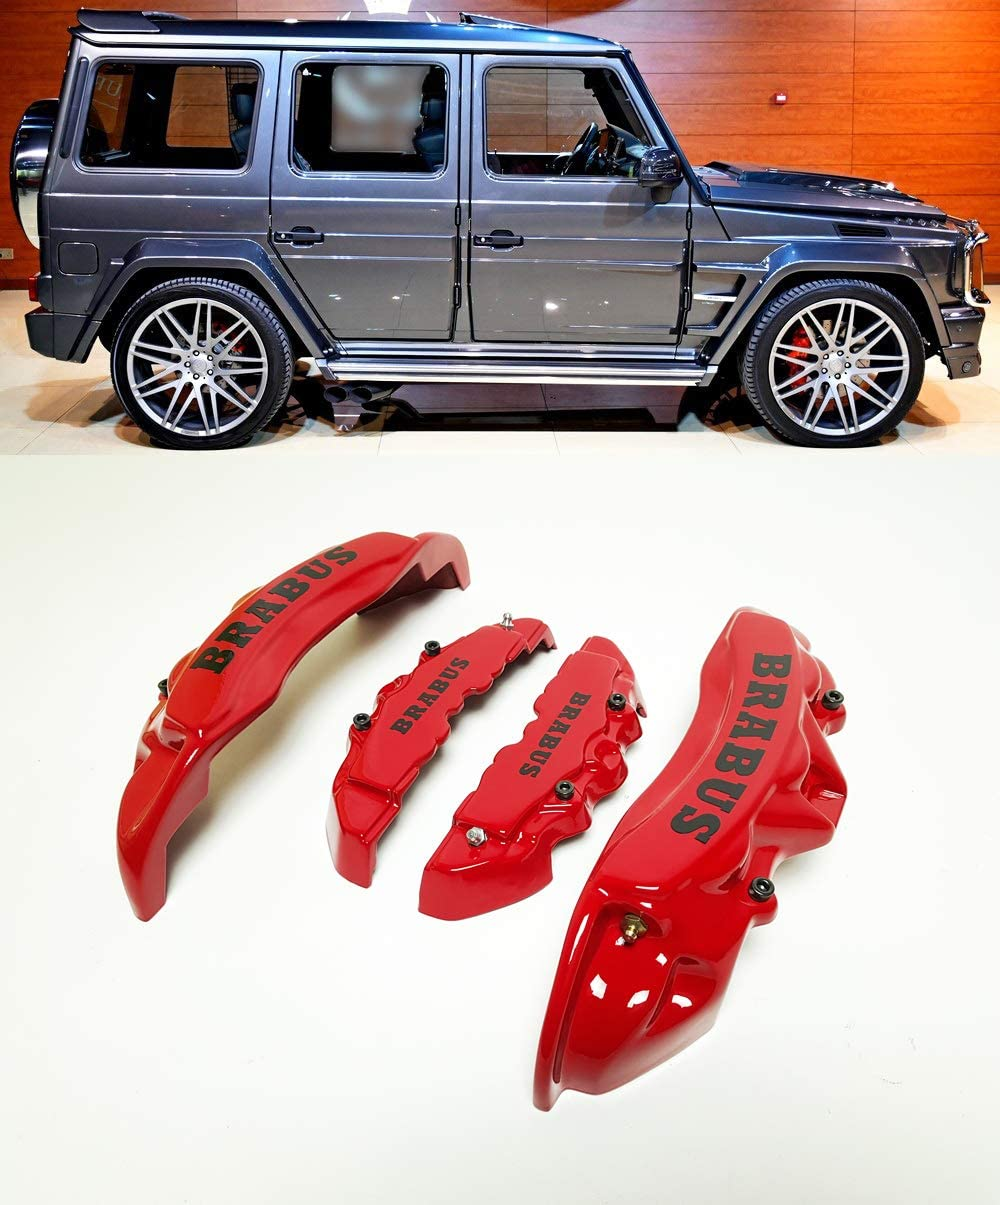 Brabus Style – Red Color Fiberglass – Brake Caliper Covers Brake Pads Trim – for Mercedes-Benz ML-Class W166 GL-Class X166 G-Class W463 – for 19 inch + rims